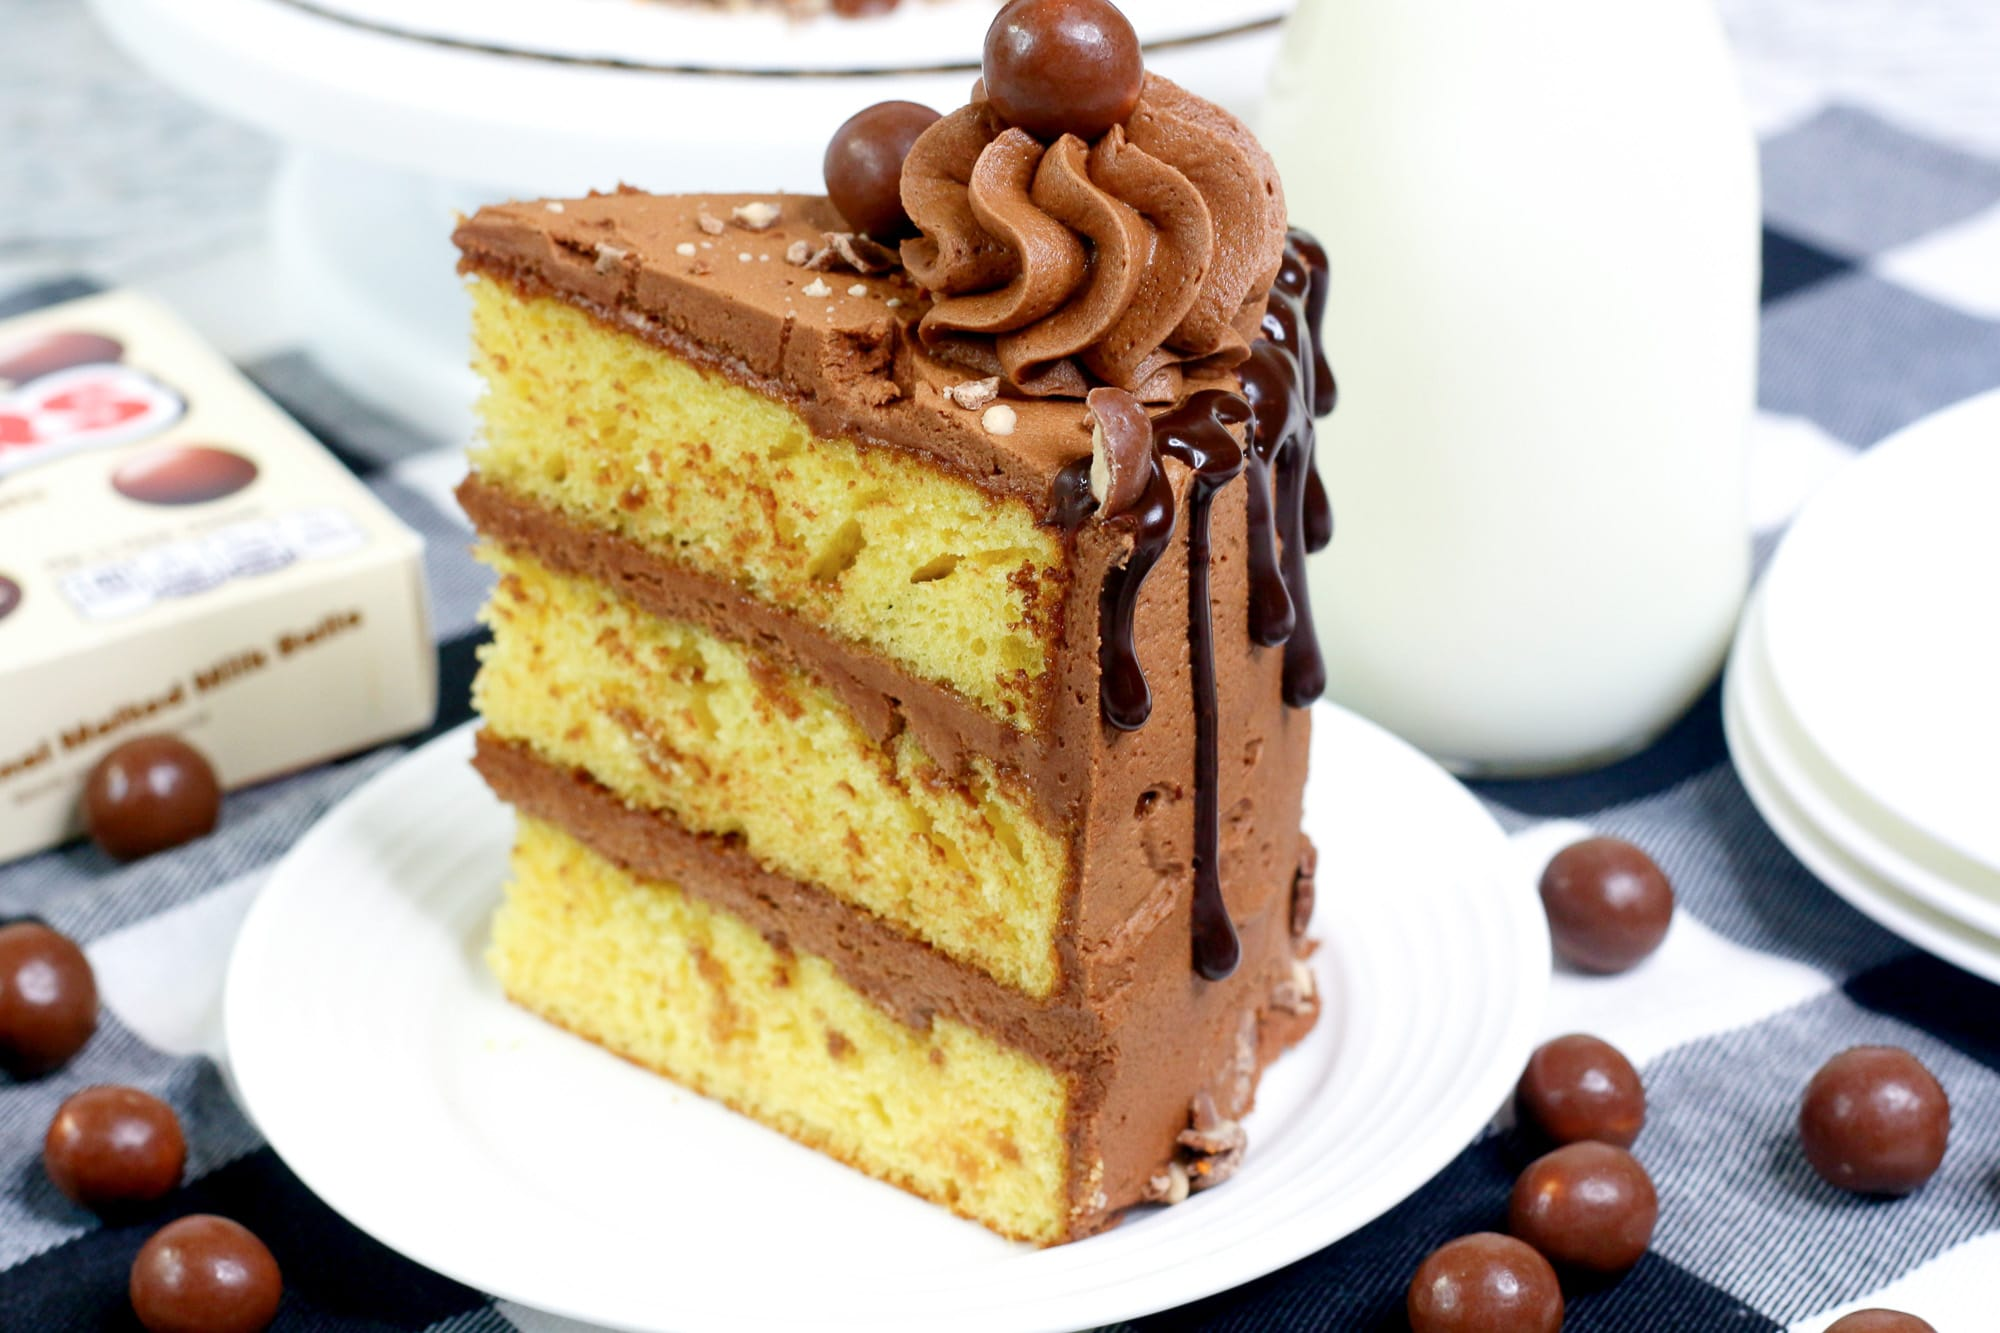 slice of butter cake with chocolate frosting on a white plate